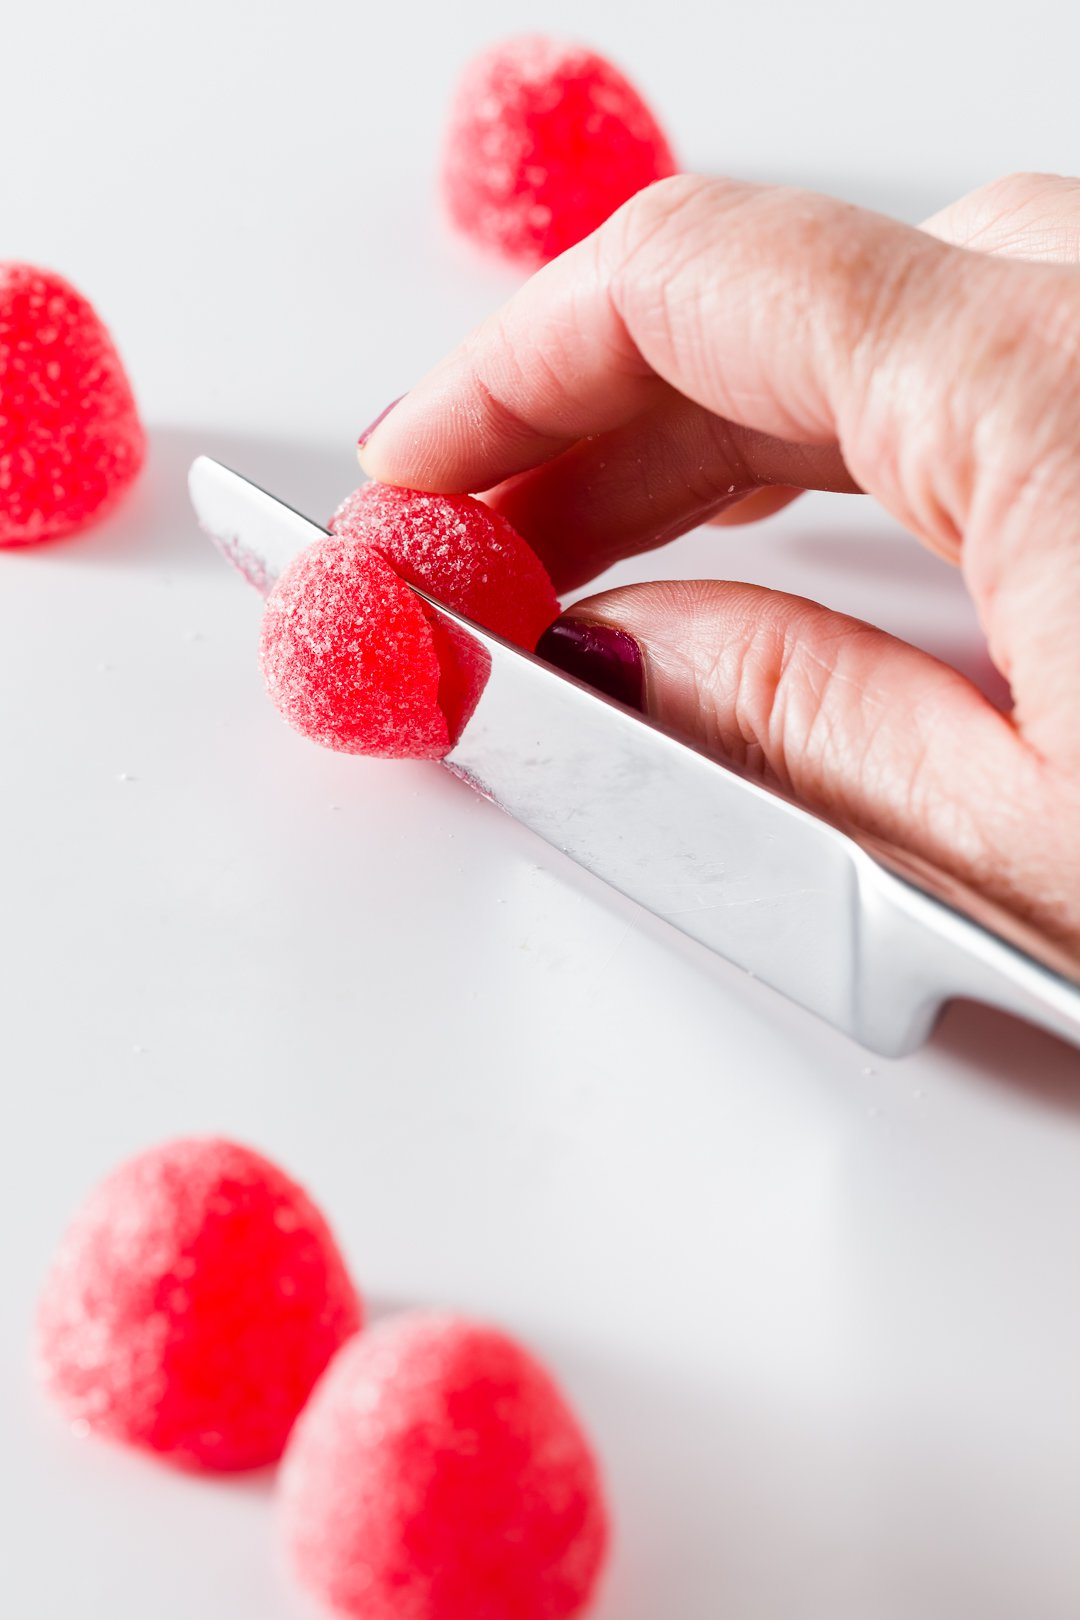 Cutting red gumdrops in half with a knife